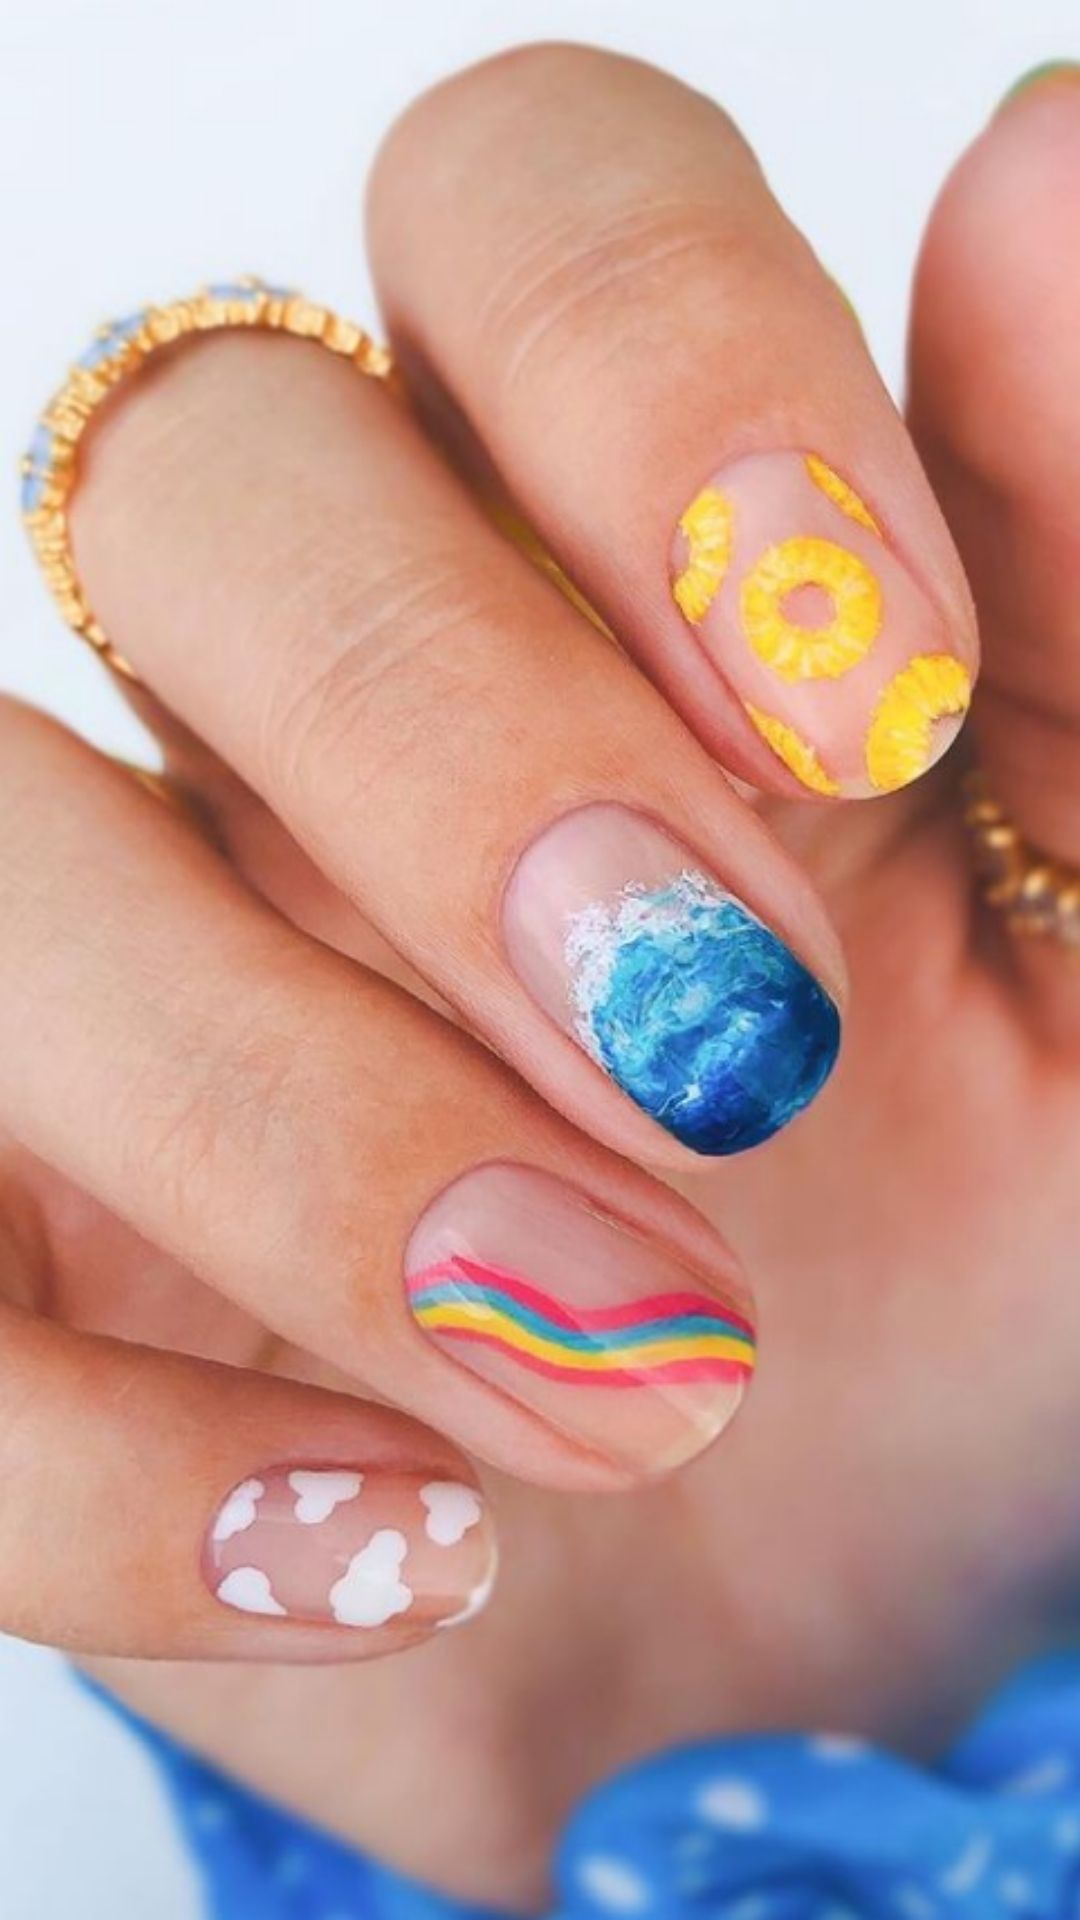 Back to school nails   Best summer nail art ideas and nail designs 2021